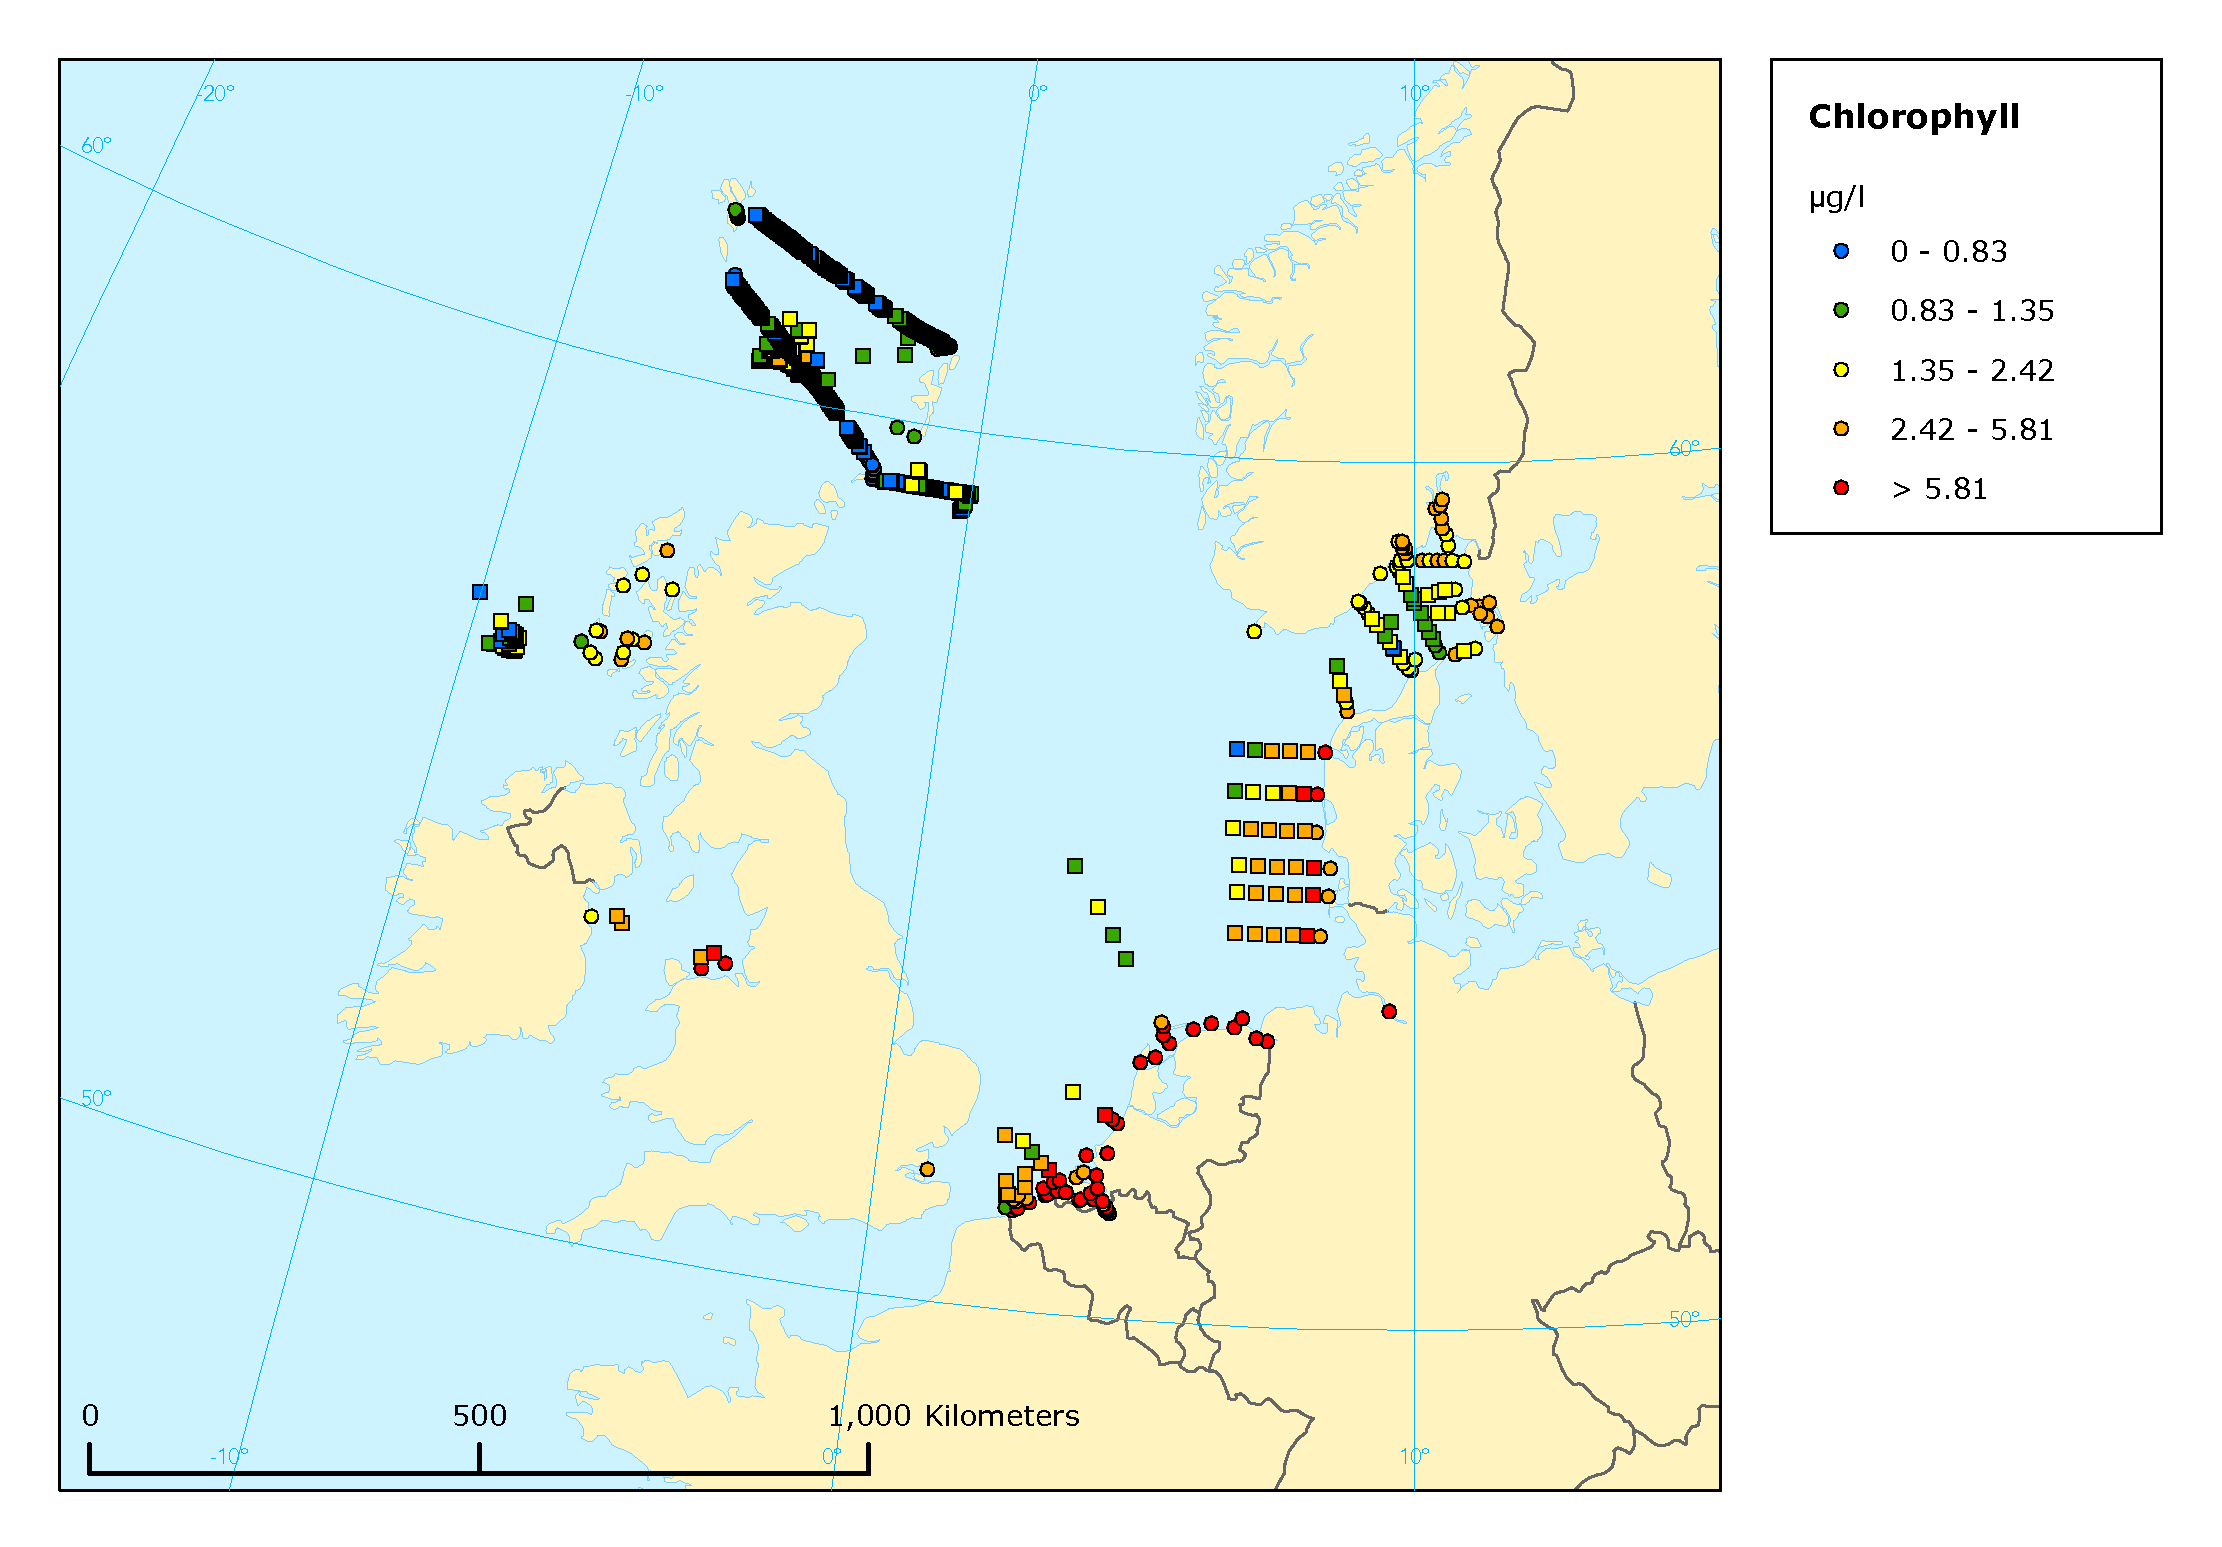 Mean summer surface concentrations of chlorophyll a in the Greater North Sea, the Irish Sea and the north-east Atlantic, 2003